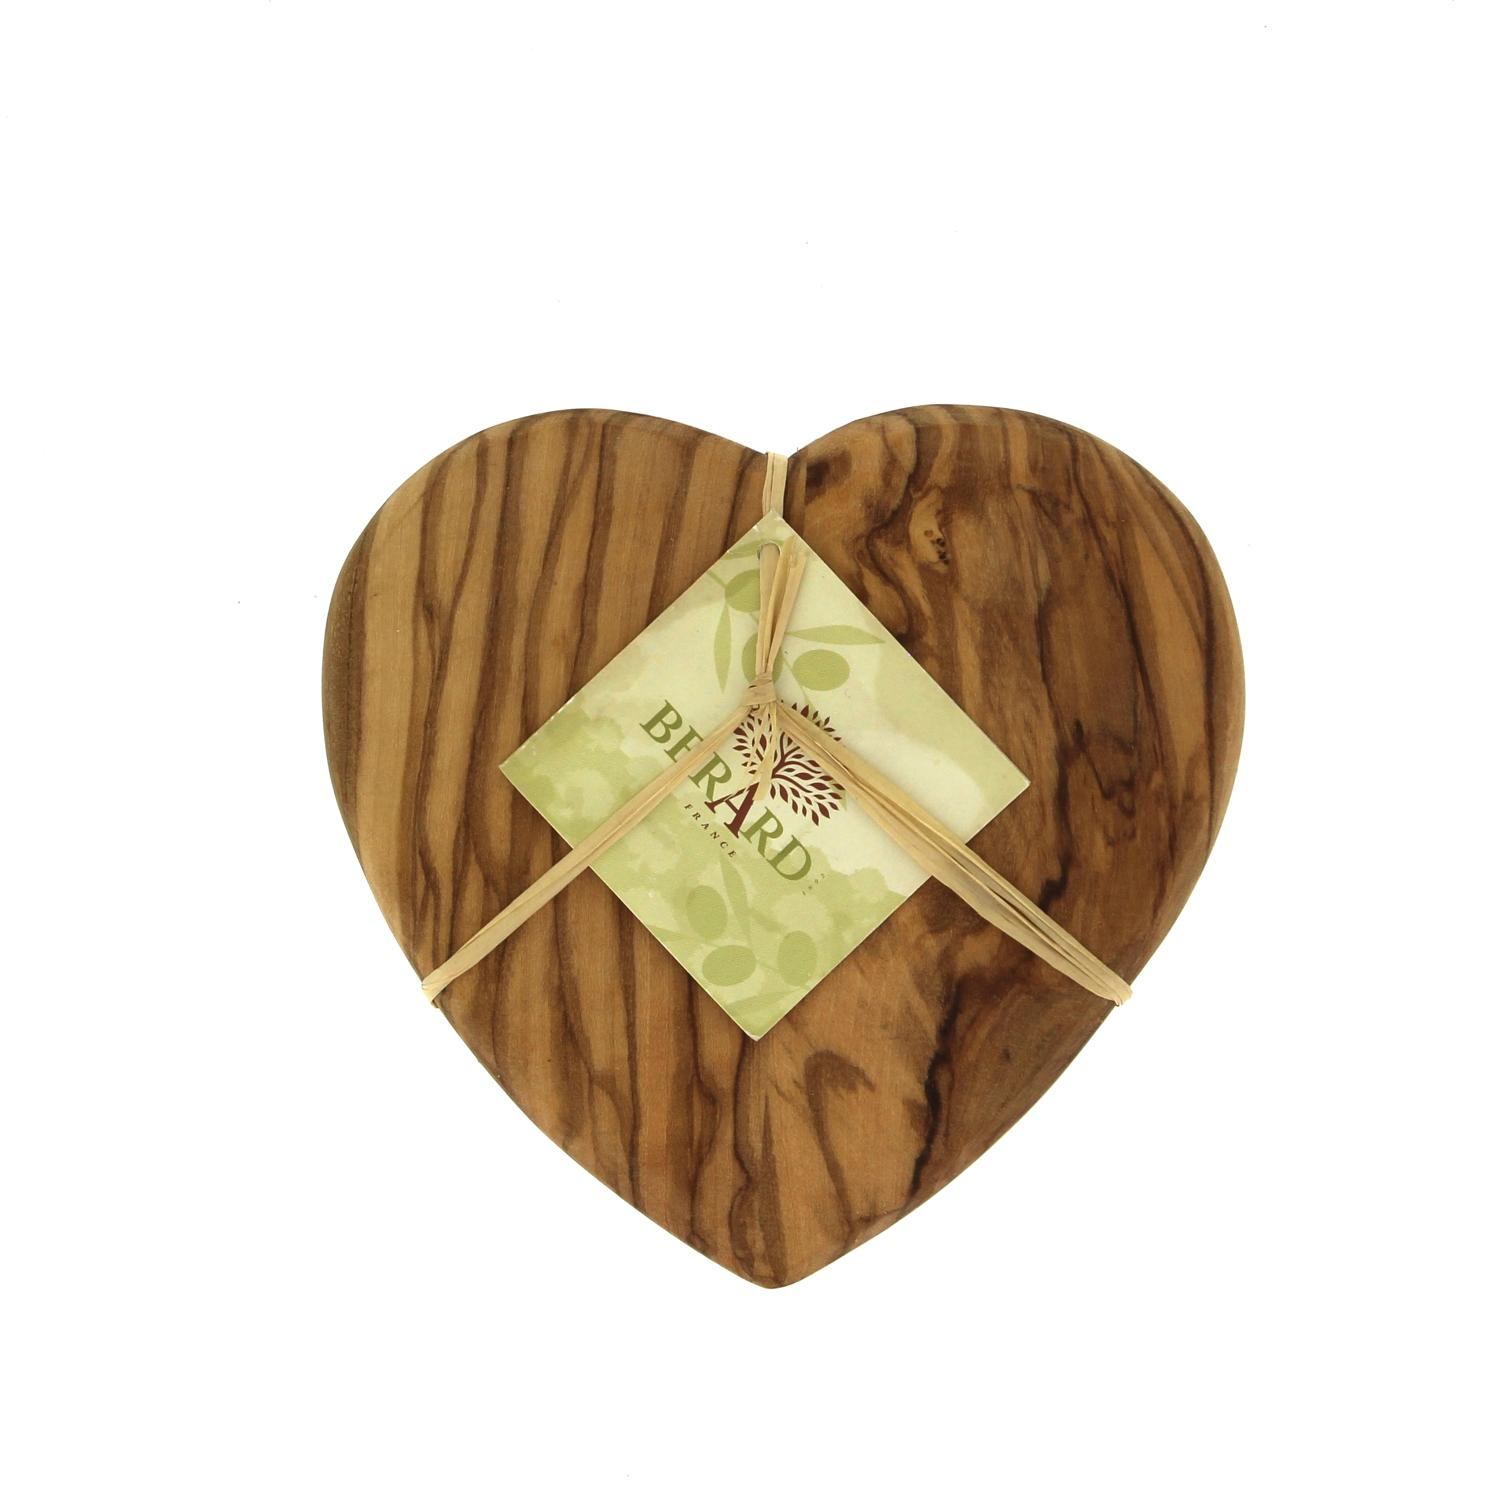 HEART Olive wood Chopping Board - Medium